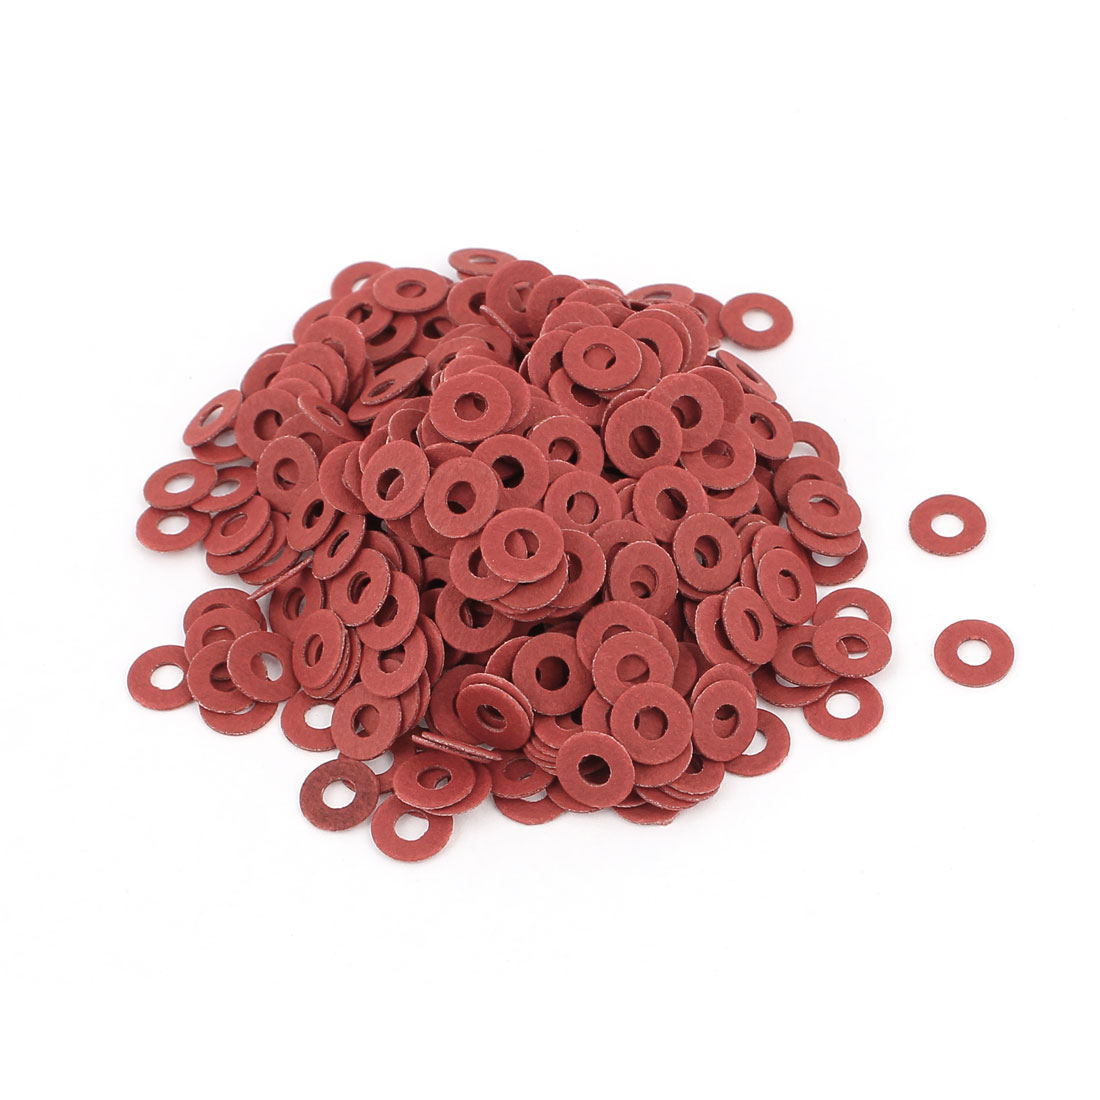 Fiber Flat Insulating Washer Ring 2.5mmx6mmx0.5mm 500Pcs Red for Screw